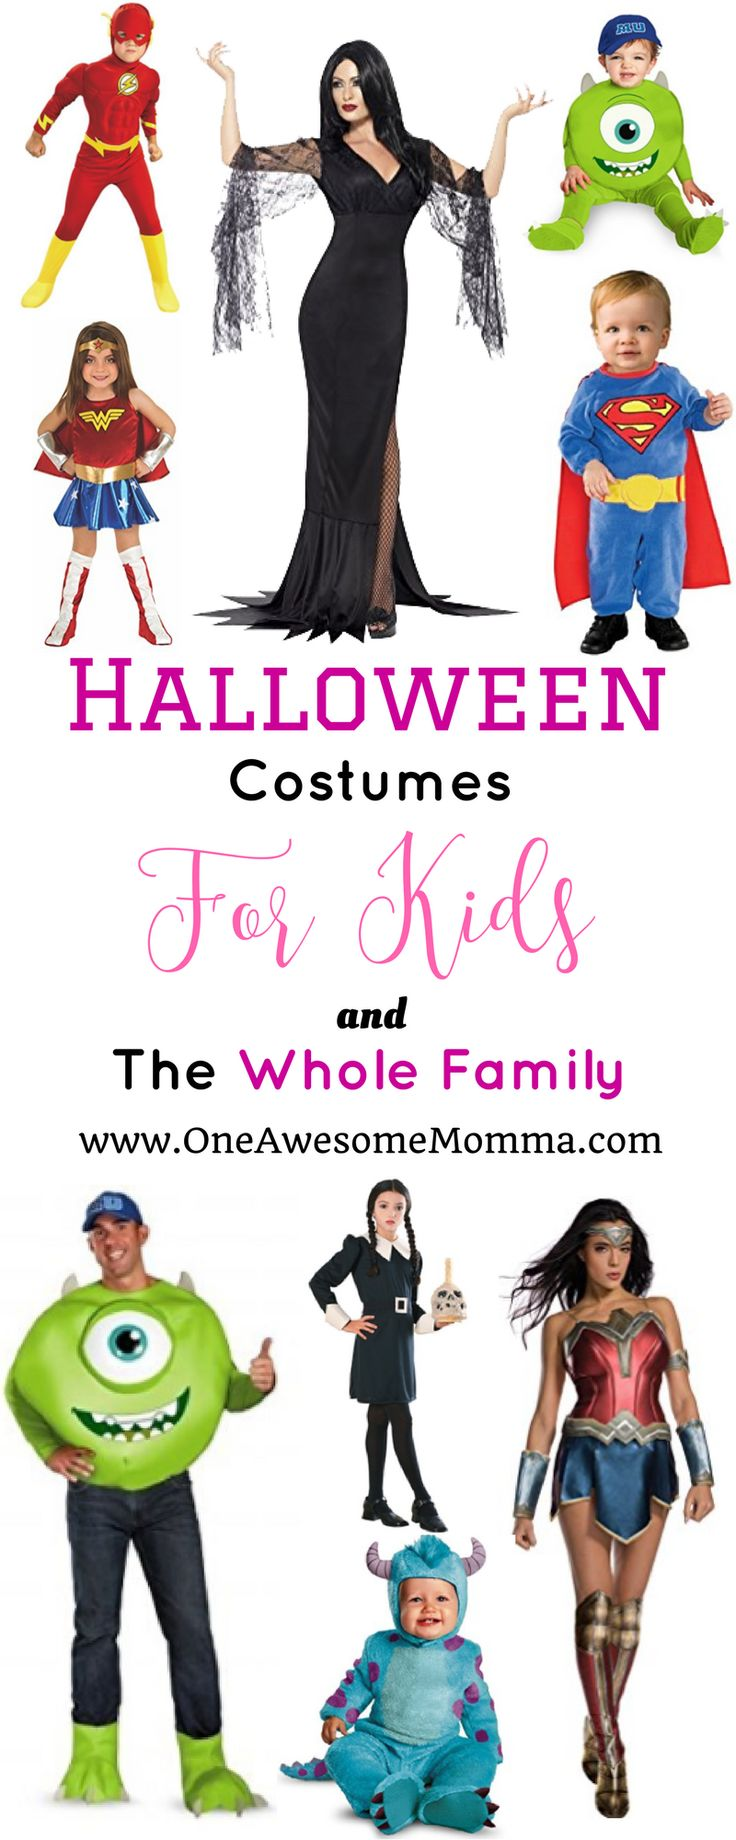 Looking for halloween costumes ideas? This post has both practical halloween costumes & halloween costumes for kids & the whole family. | family halloween costumes | family halloween costumes with baby | family halloween costumes with toddler | family halloween costumes with kids | baby halloween costumes | toddler halloween costumes | kids halloween costumes | addams family costume | justice league costumes | wonder woman costume | monsters inc costumes | inside out costume